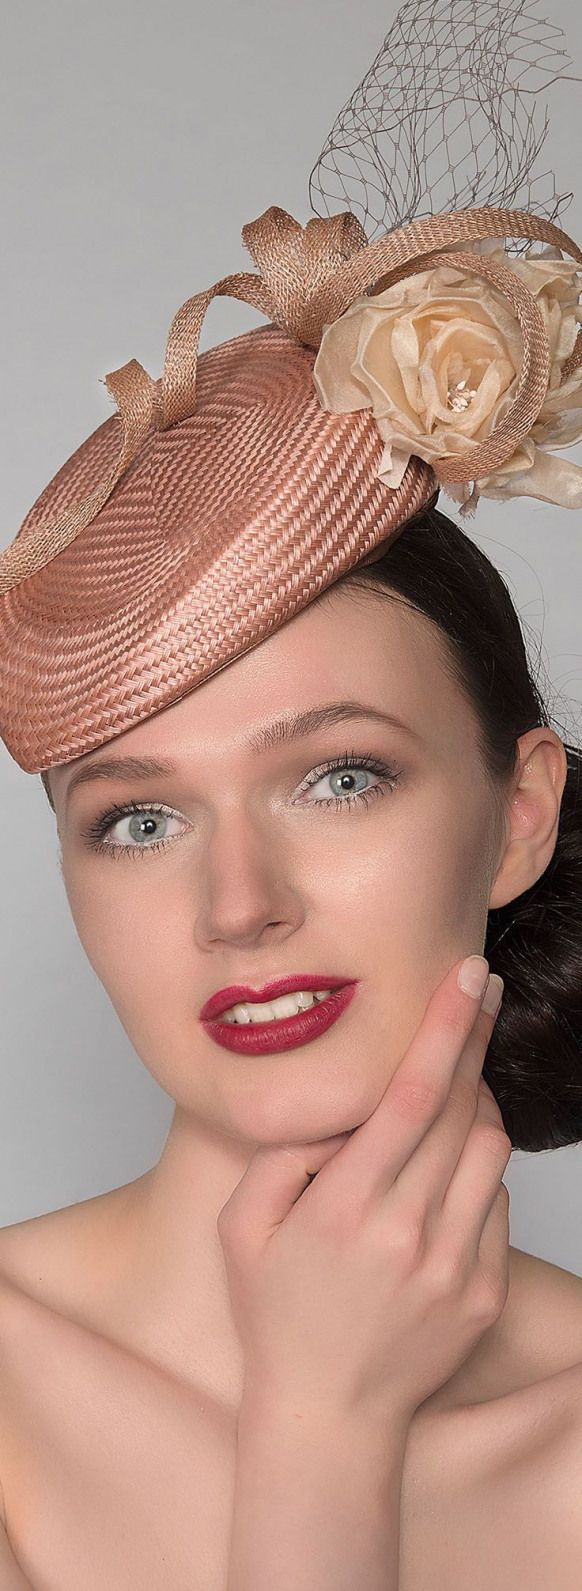 Jane Taylor Headpiece Fascinator Hat Hire for Royal Ascot Races Mother of the Bride or other events The only Hat Hire in Ascot Available on Mail Order Designer hats milli...